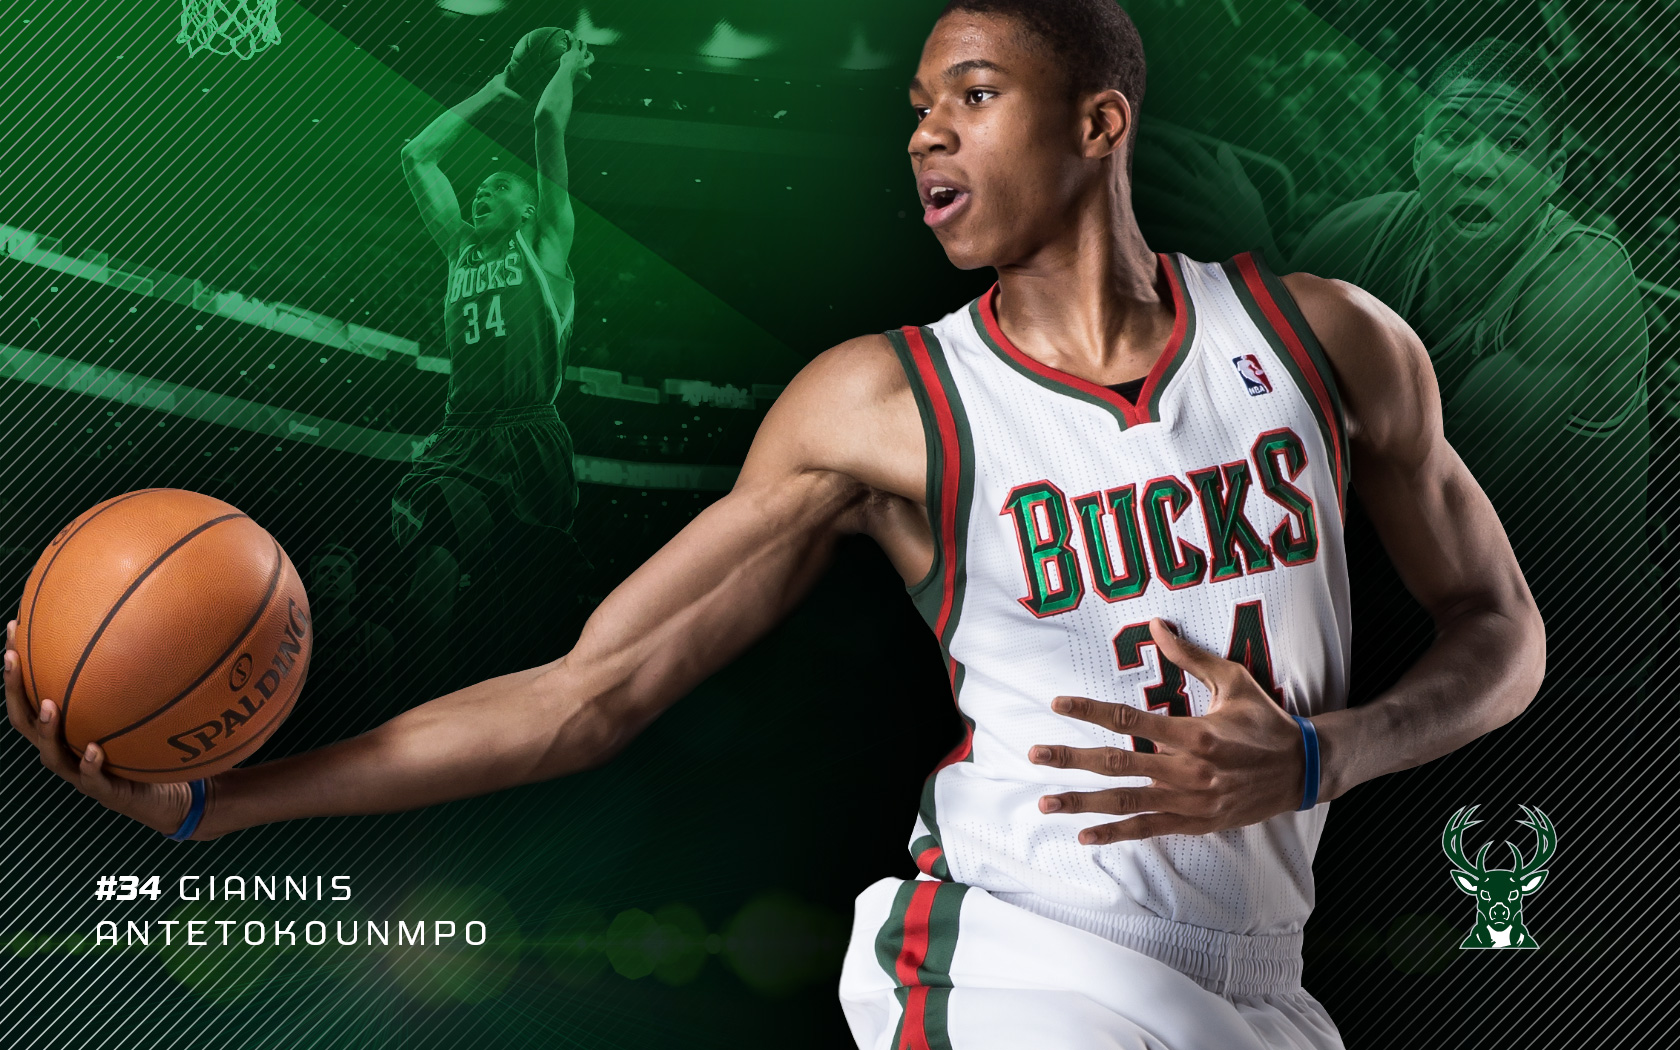 Bucks Backgrounds And Wallpapers 2013 2014 Season